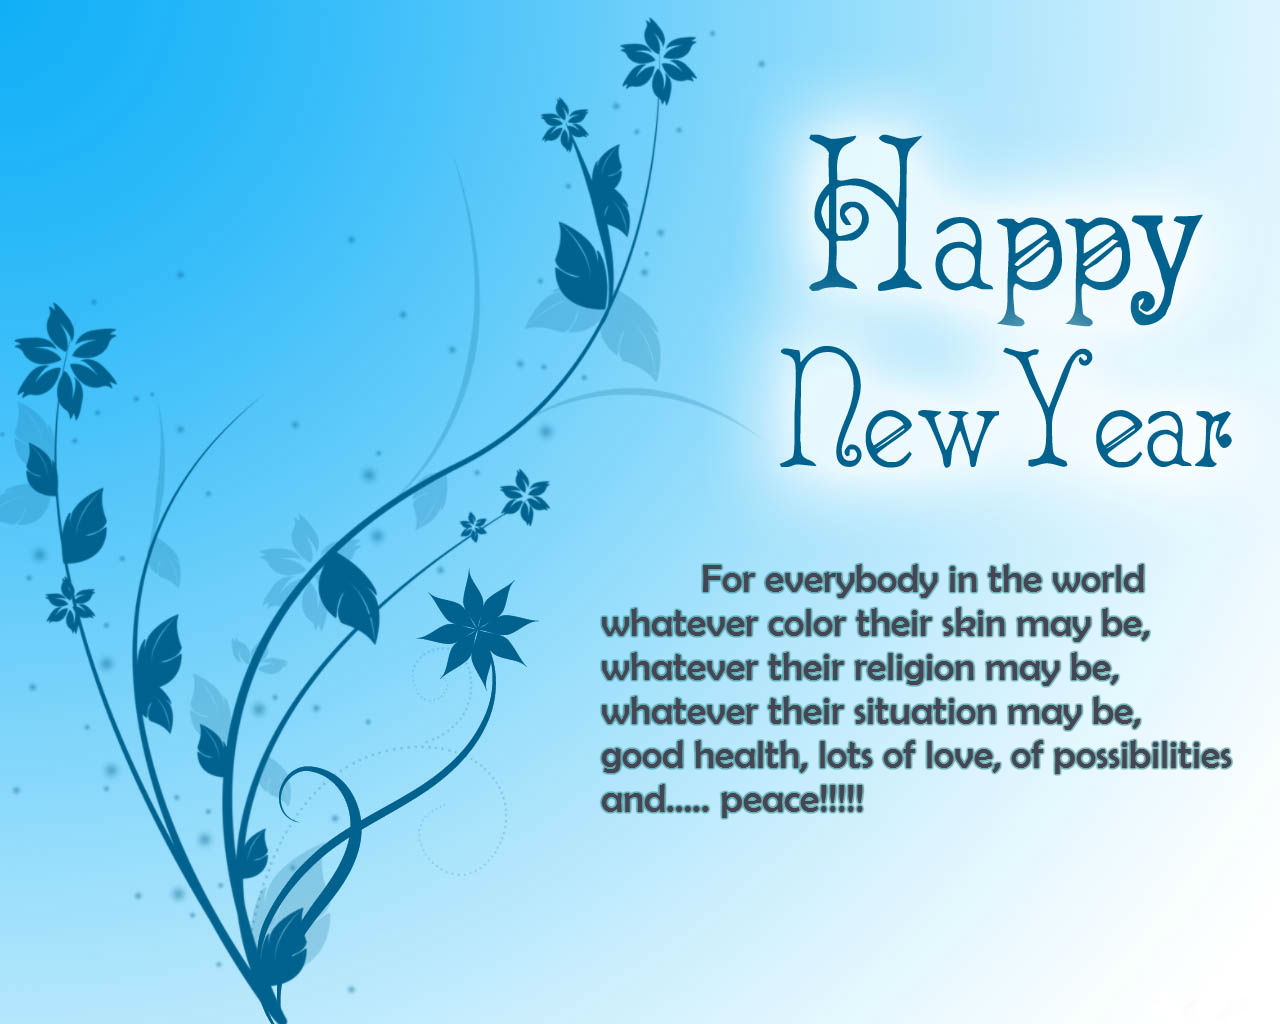 Happy new year 2017 wishes messages happy new year 2017 wishes happy new year 2017 wishes messages kristyandbryce Images